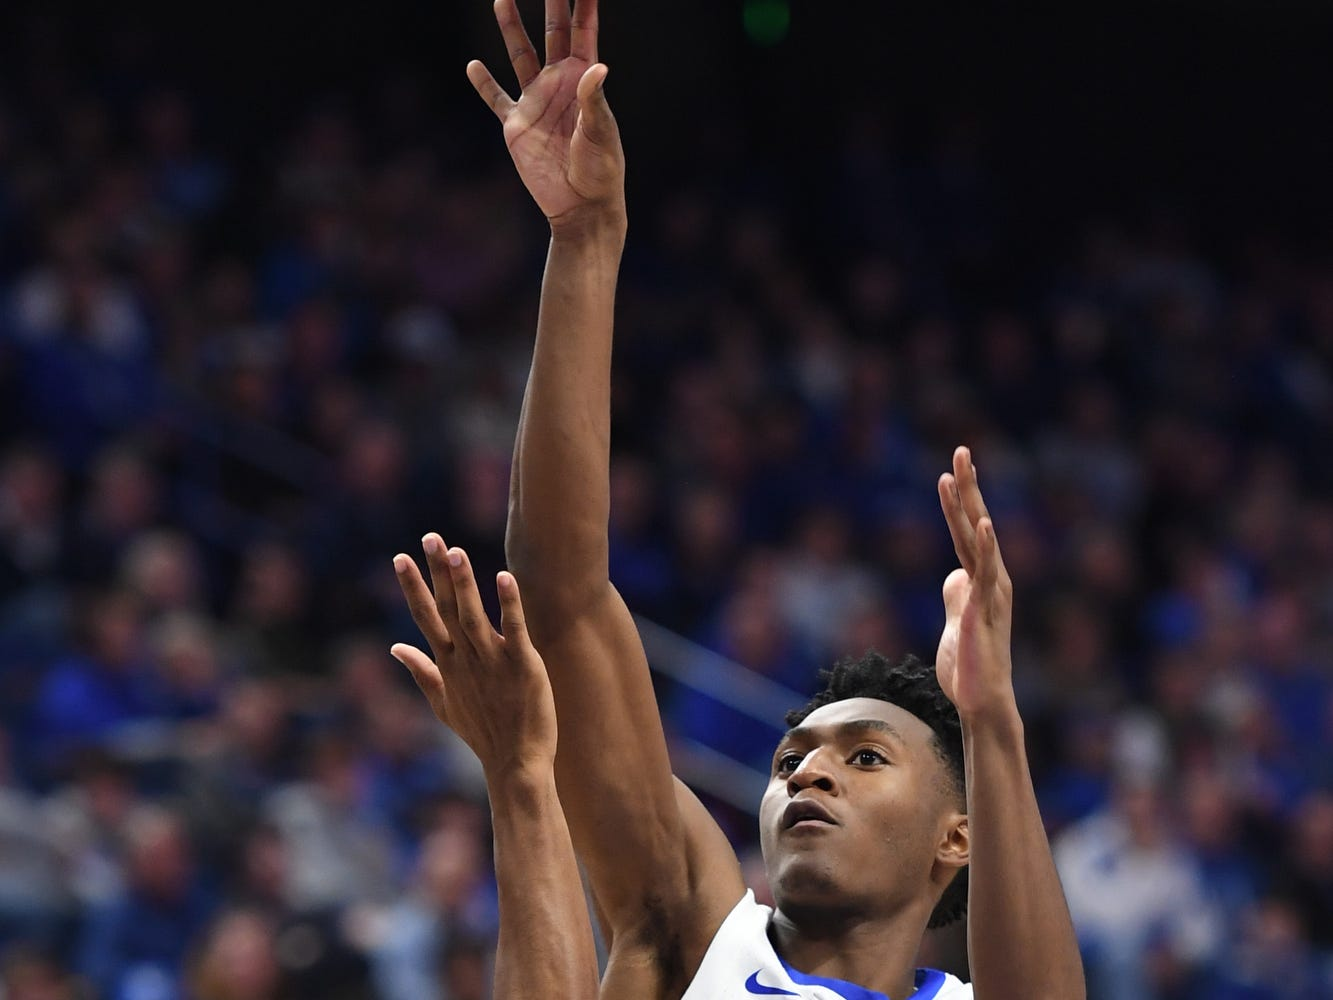 UK G Immanuel Quickley shoots during the University of Kentucky mens basketball game against Southern Illinois at Rupp Arena in Lexington, Kentucky on Friday, November 9, 2018.